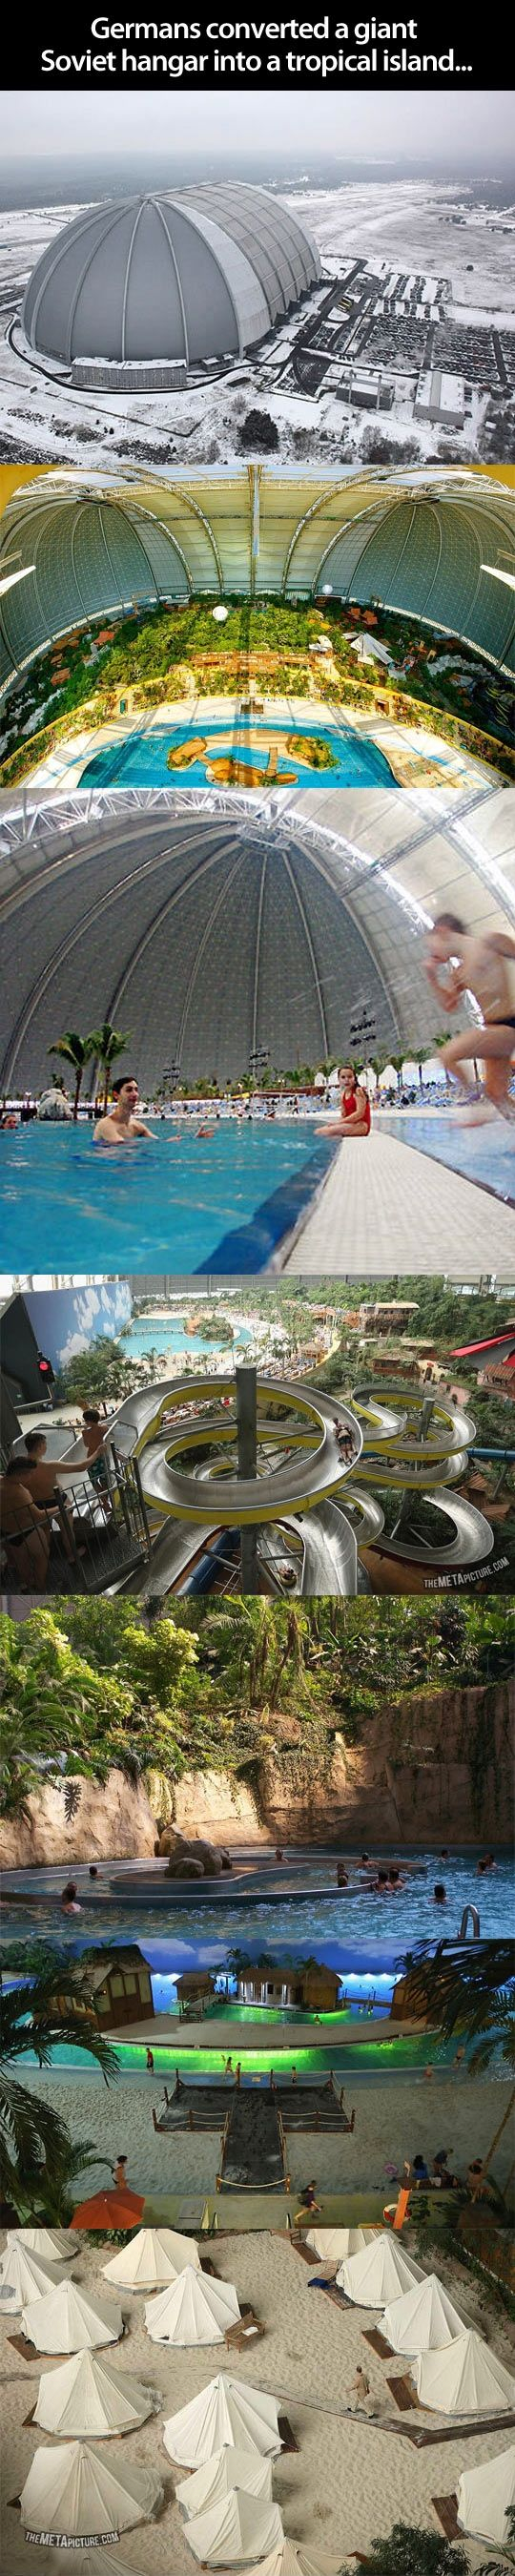 Giant indoor water park that was once a Soviet hanger. Been there done that.